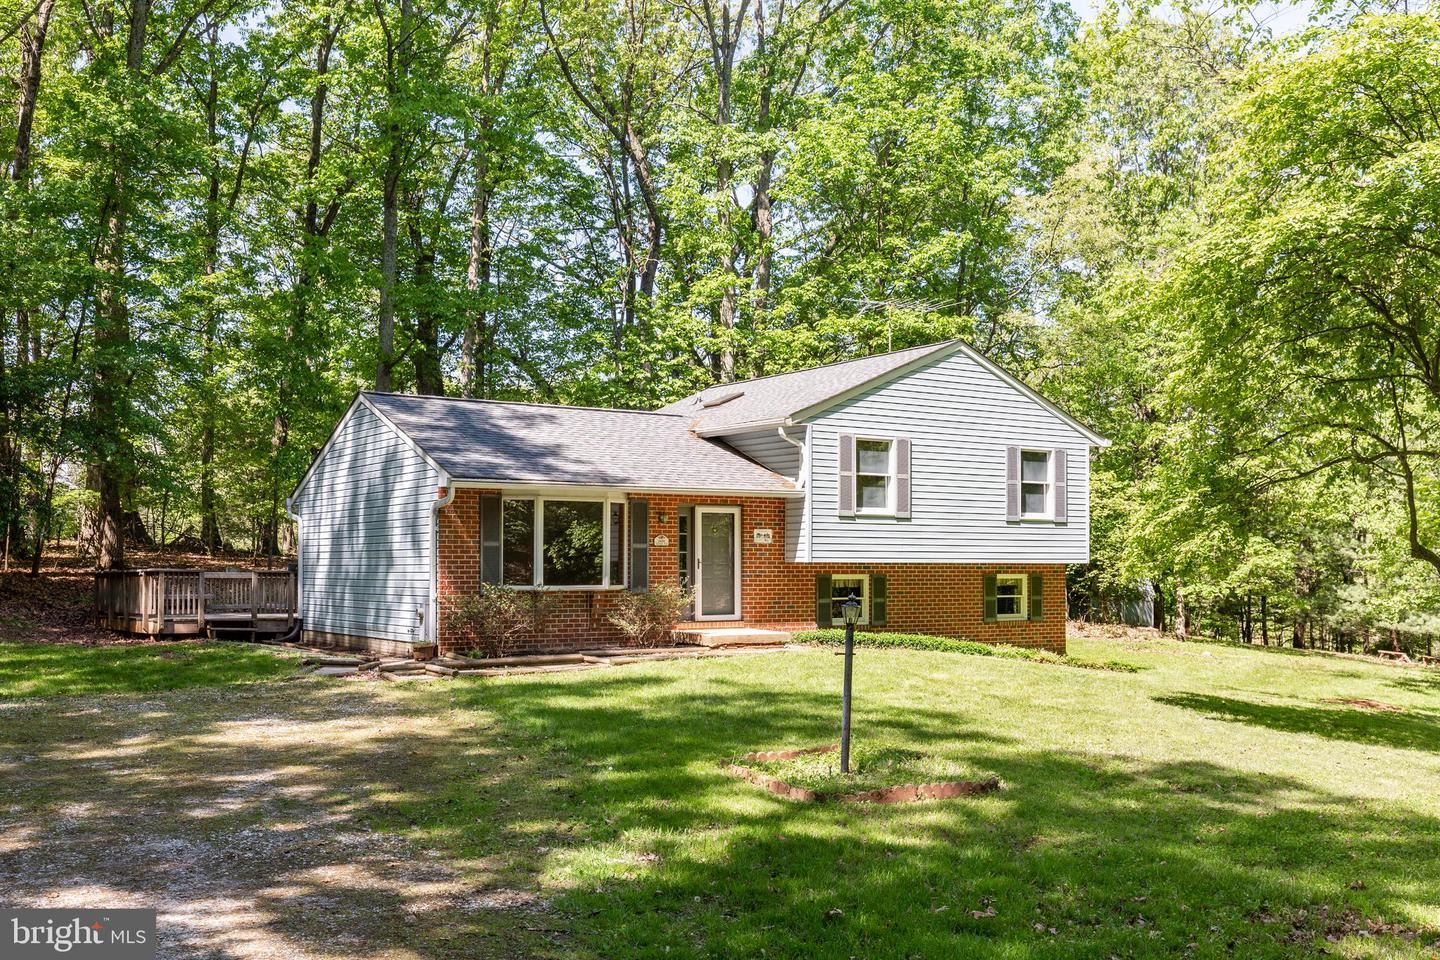 2409 STONE RD, Westminster, MD 21158 - MLS#: MDCR204156